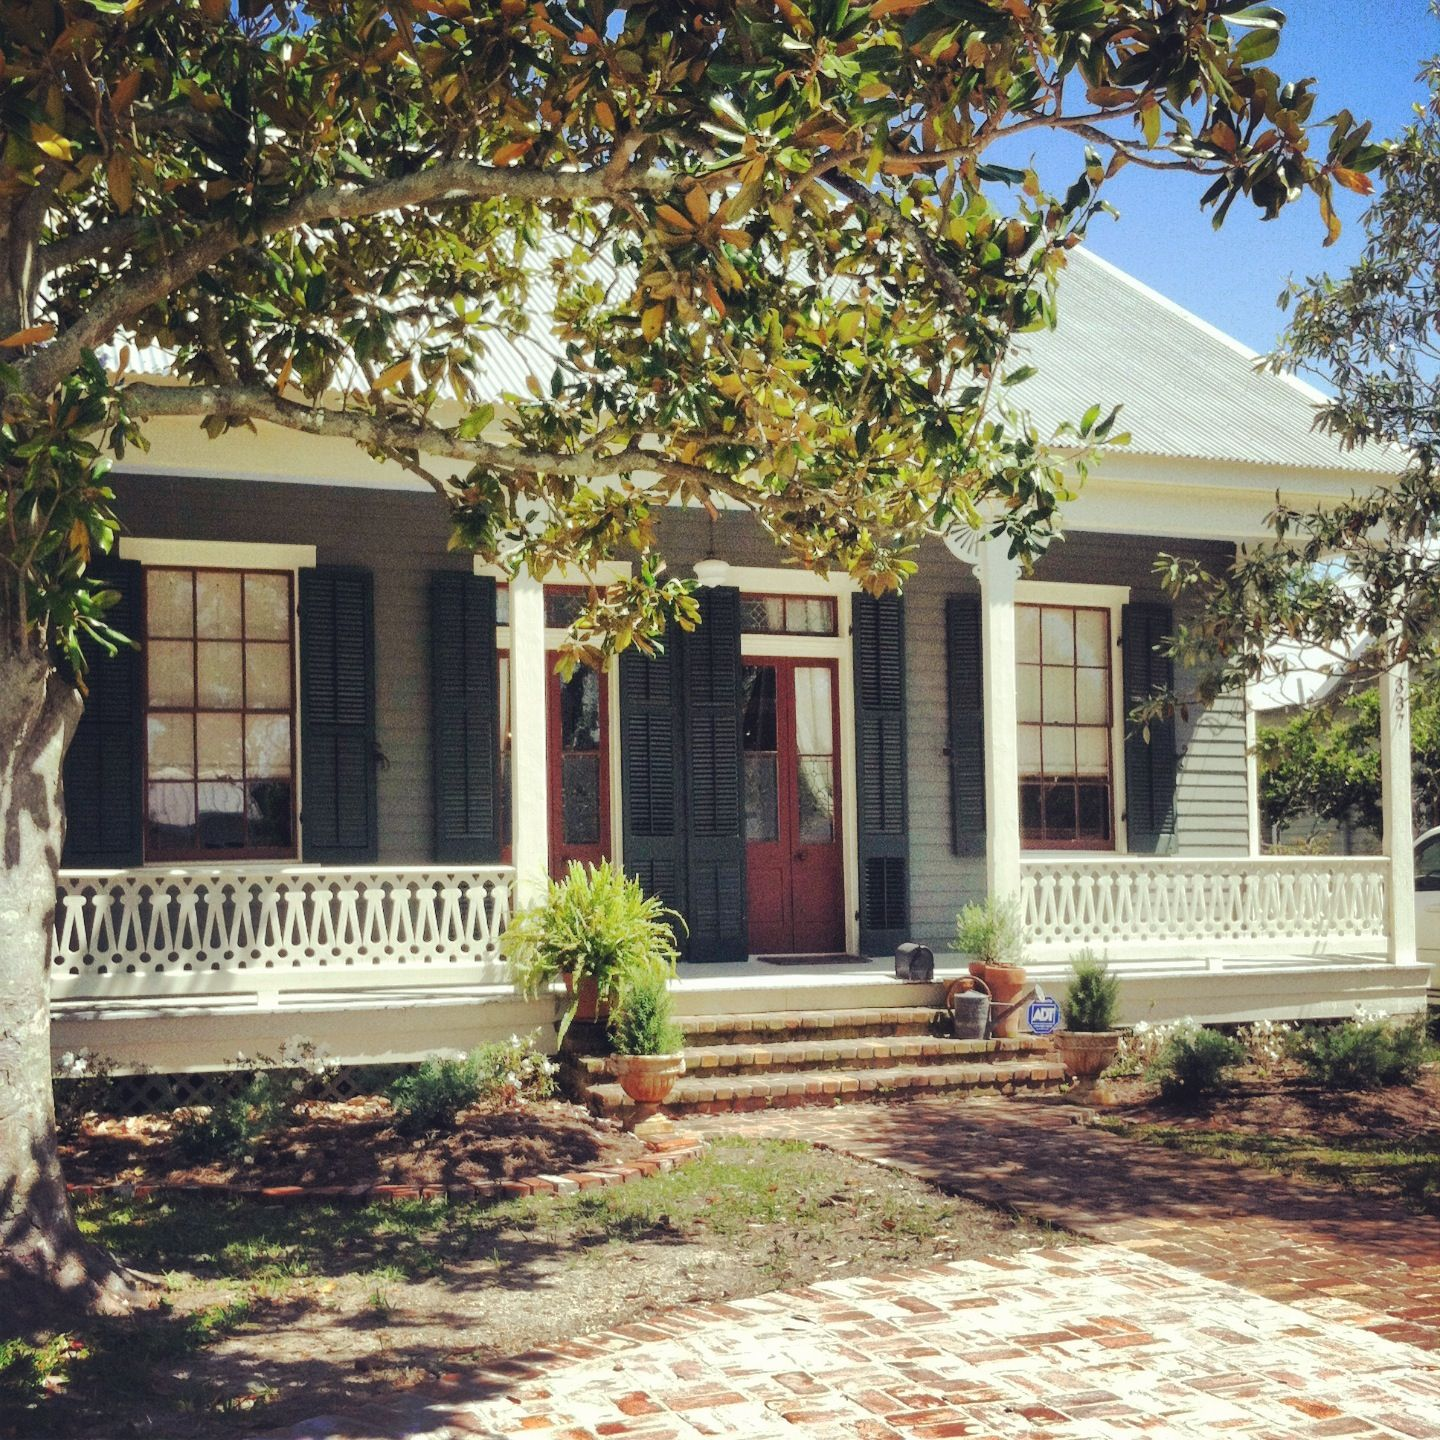 Coastal Antebellum Homes from my travels to Mississippi Gulf Coast. Those that survived Katrina.